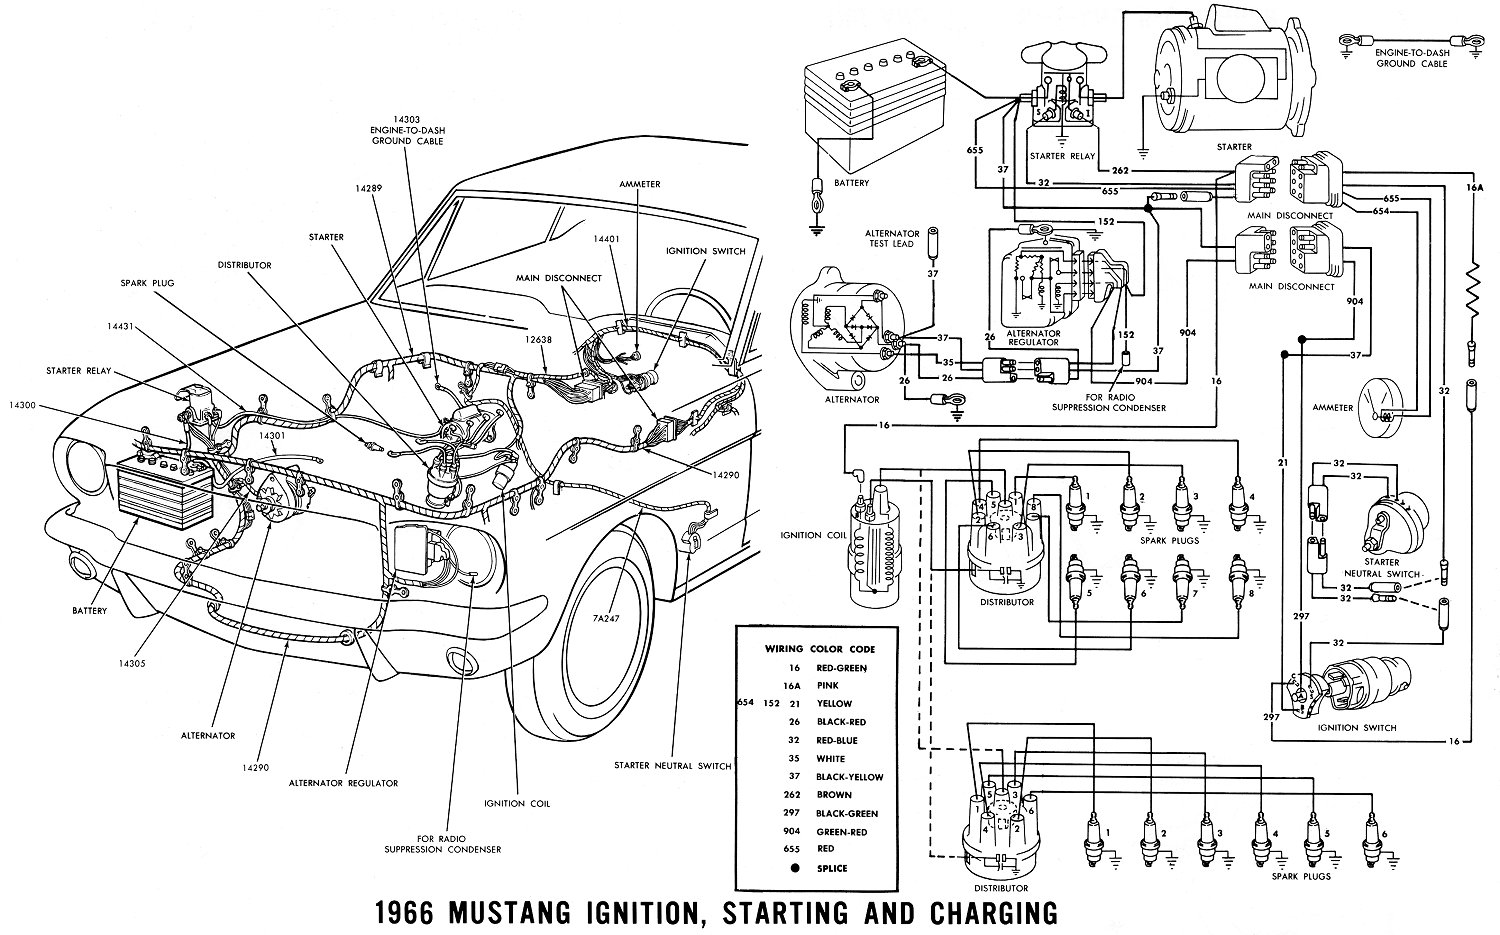 1965 Mustang Wiring Harness Diagram - Wiring Diagram Online on 1967 mustang wiper motor wiring diagram, 1965 mustang fuel pump diagram, 1965 mustang brake line diagram, 1965 mustang starter solenoid, 1965 mustang engine diagram, mustang wiring harness diagram, 1965 mustang exhaust diagram, 1965 mustang assembly diagram, 1965 mustang 289 hipo engine, 1965 mustang outline, 1965 mustang blueprints, 1965 mustang door diagram, 1964 mustang wiring diagram, 1965 mustang burnt amber, 1966 mustang alternator diagram, 1965 mustang fuse box diagram, 1965 mustang voltage regulator diagram, ford mustang wiring diagram, 1965 mustang tachometer diagram, 1966 mustang wiring diagram,